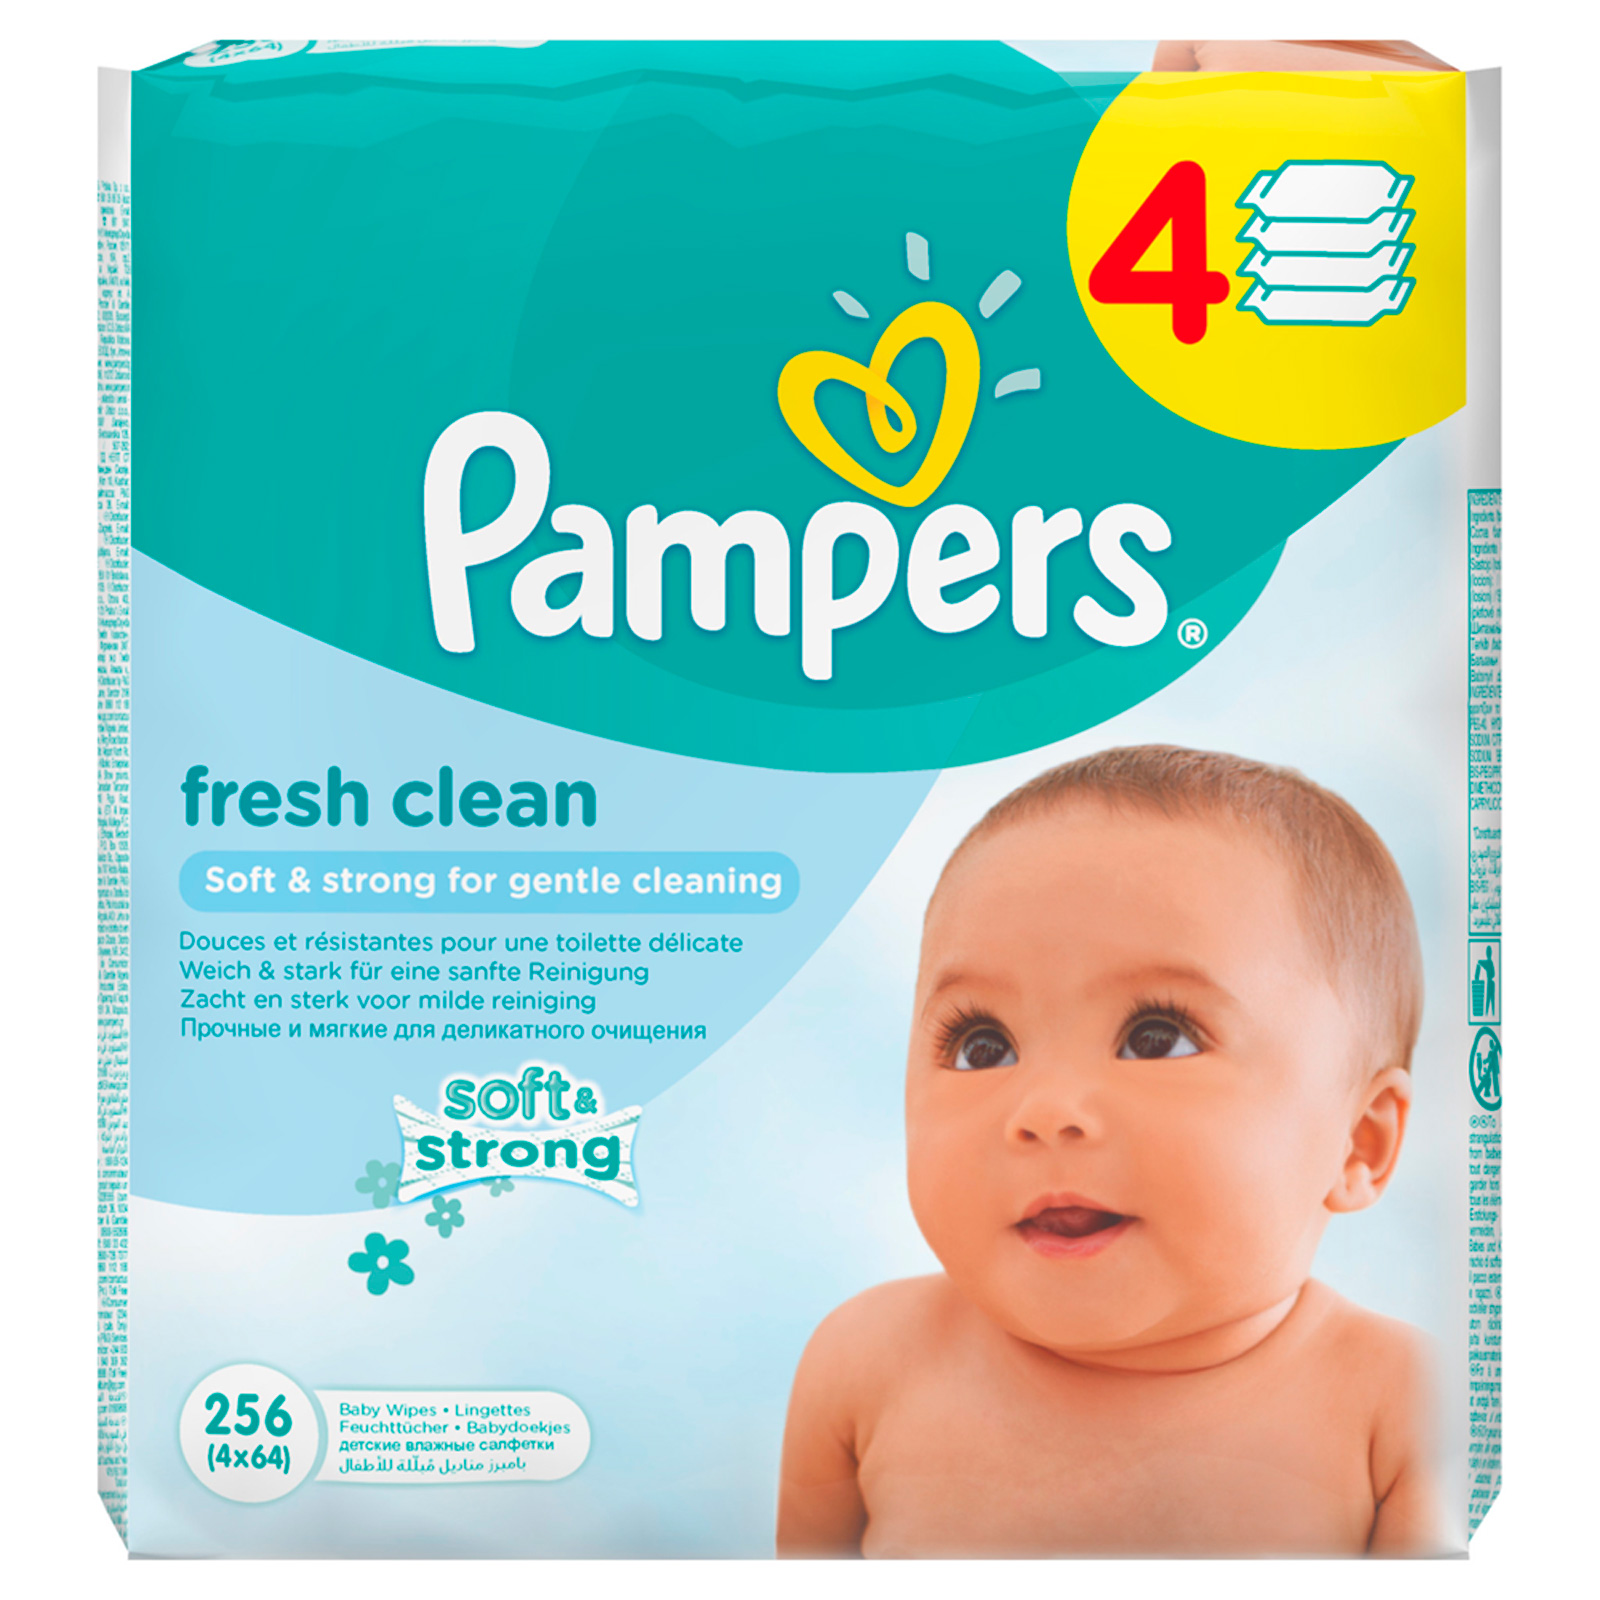 Набор Pampers №7 Подгузники Pampers New baby + Active baby 2-3 + салфетки